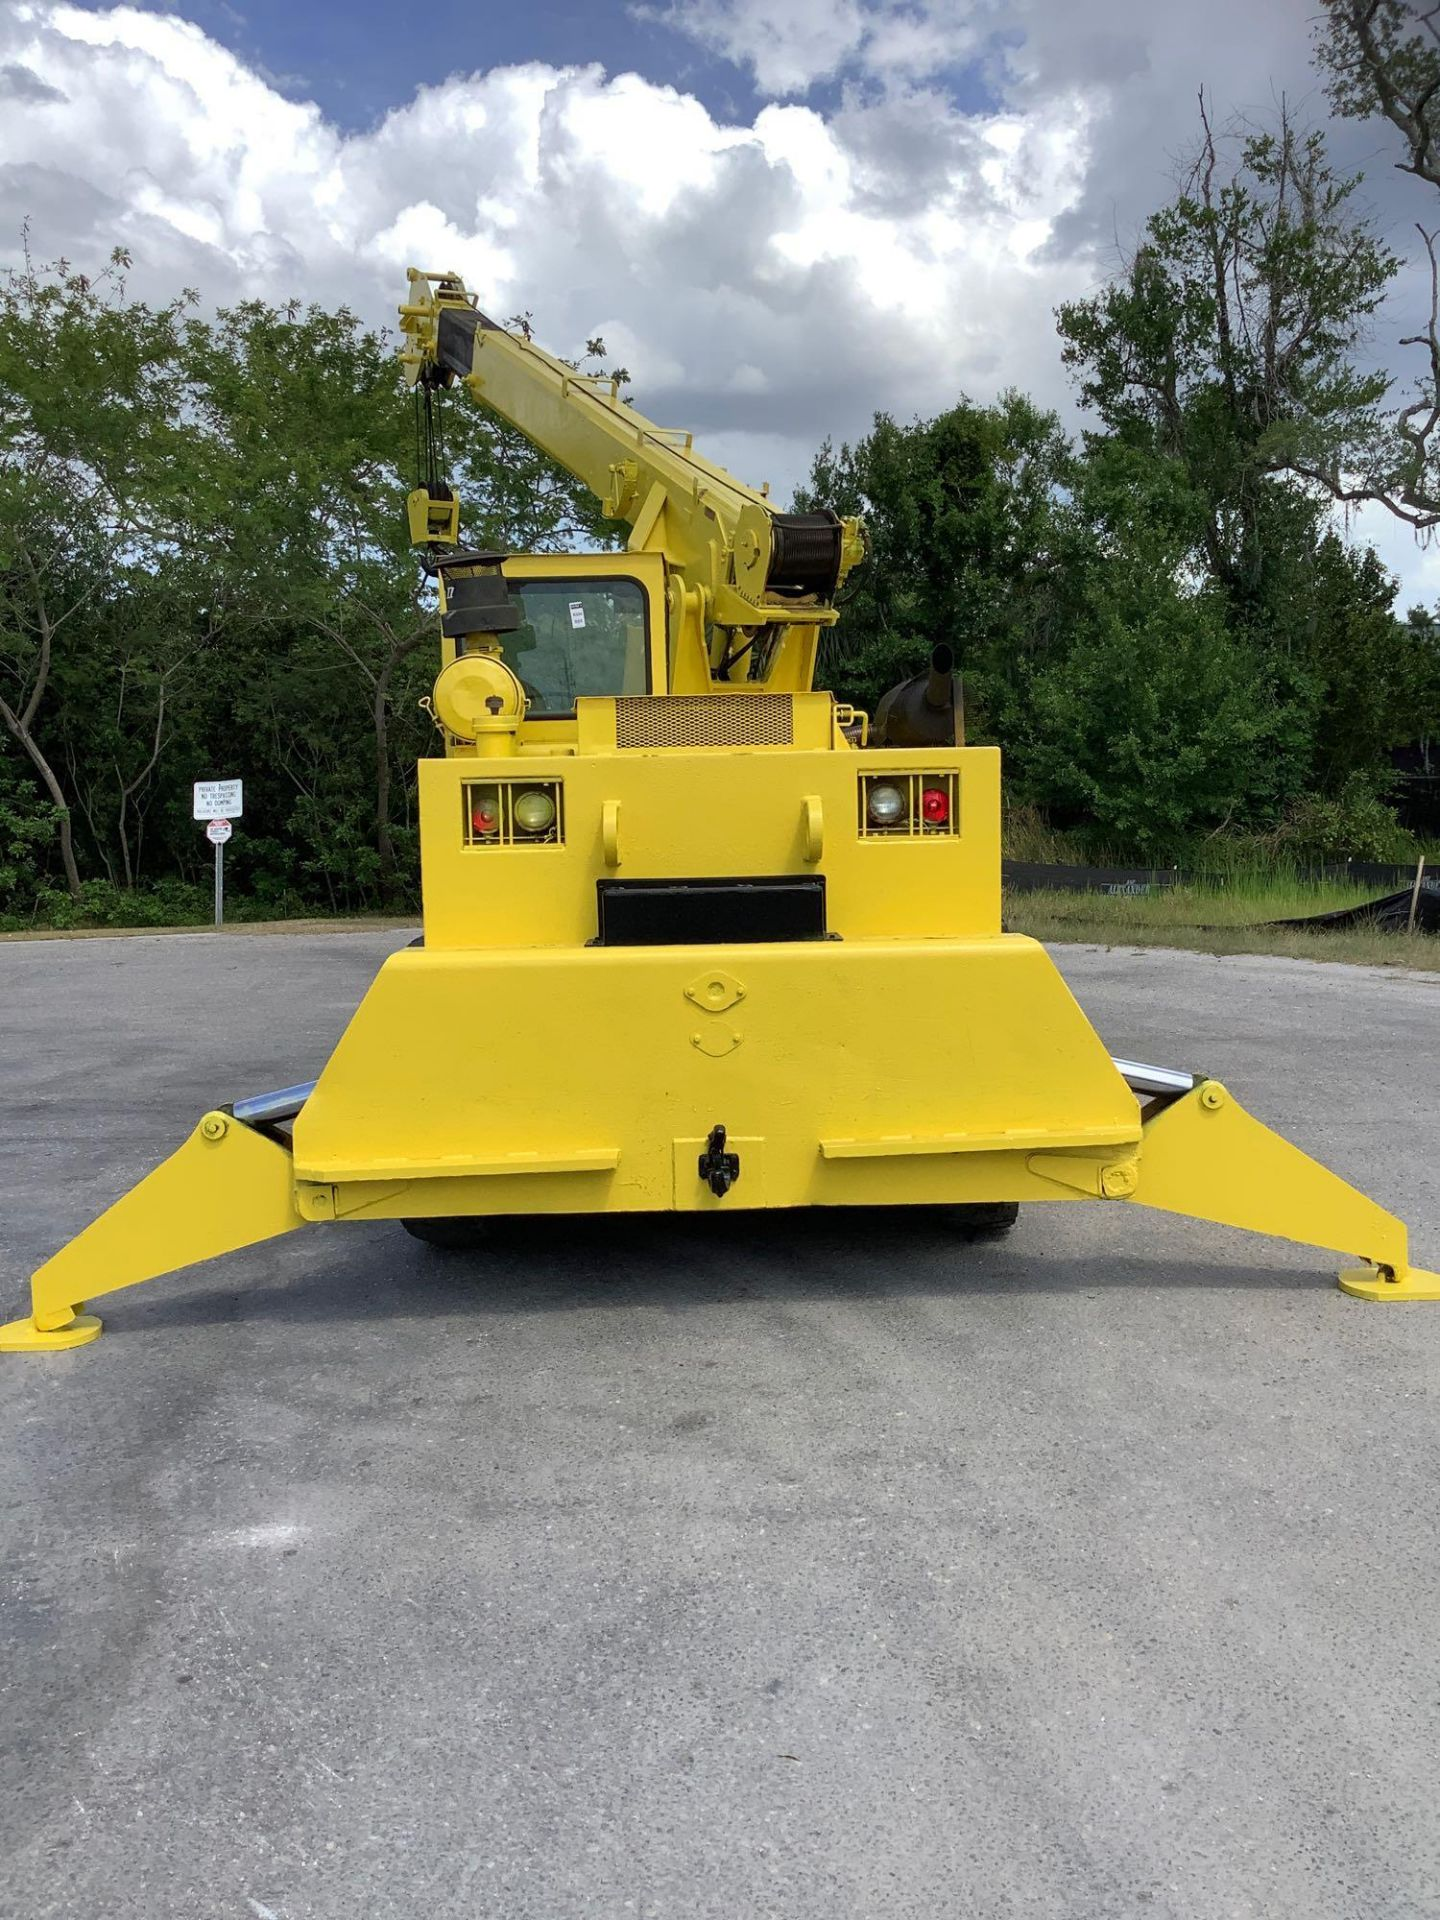 GROVE TRUCK CRANE MODEL IND1012, HYDRAULIC, TELESCOPIC, DIESEL,OUTRIGGER, RUNS AND OPERATES - Image 8 of 18